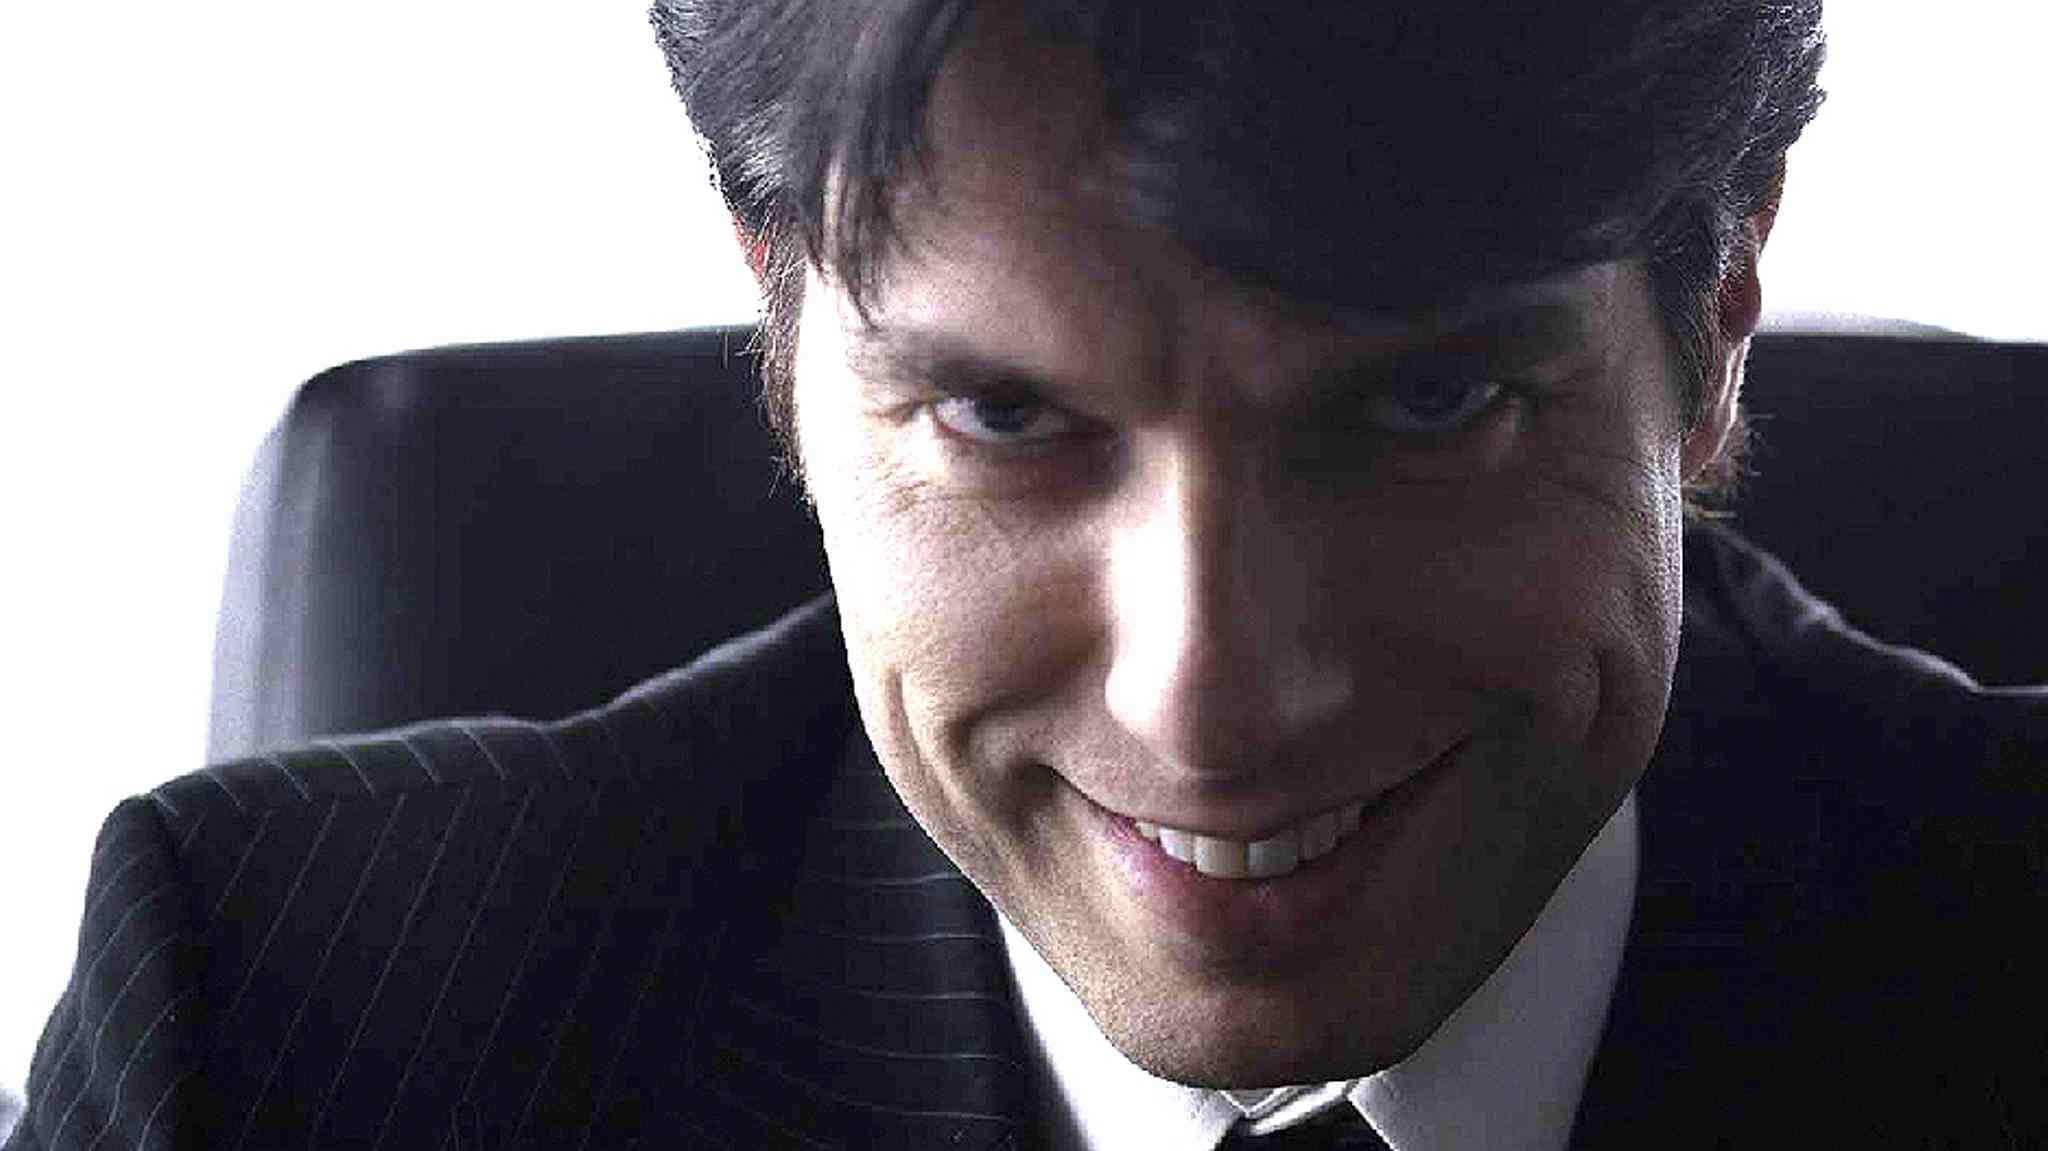 Geoff Banjavich in a still from his performance as the psychopath.